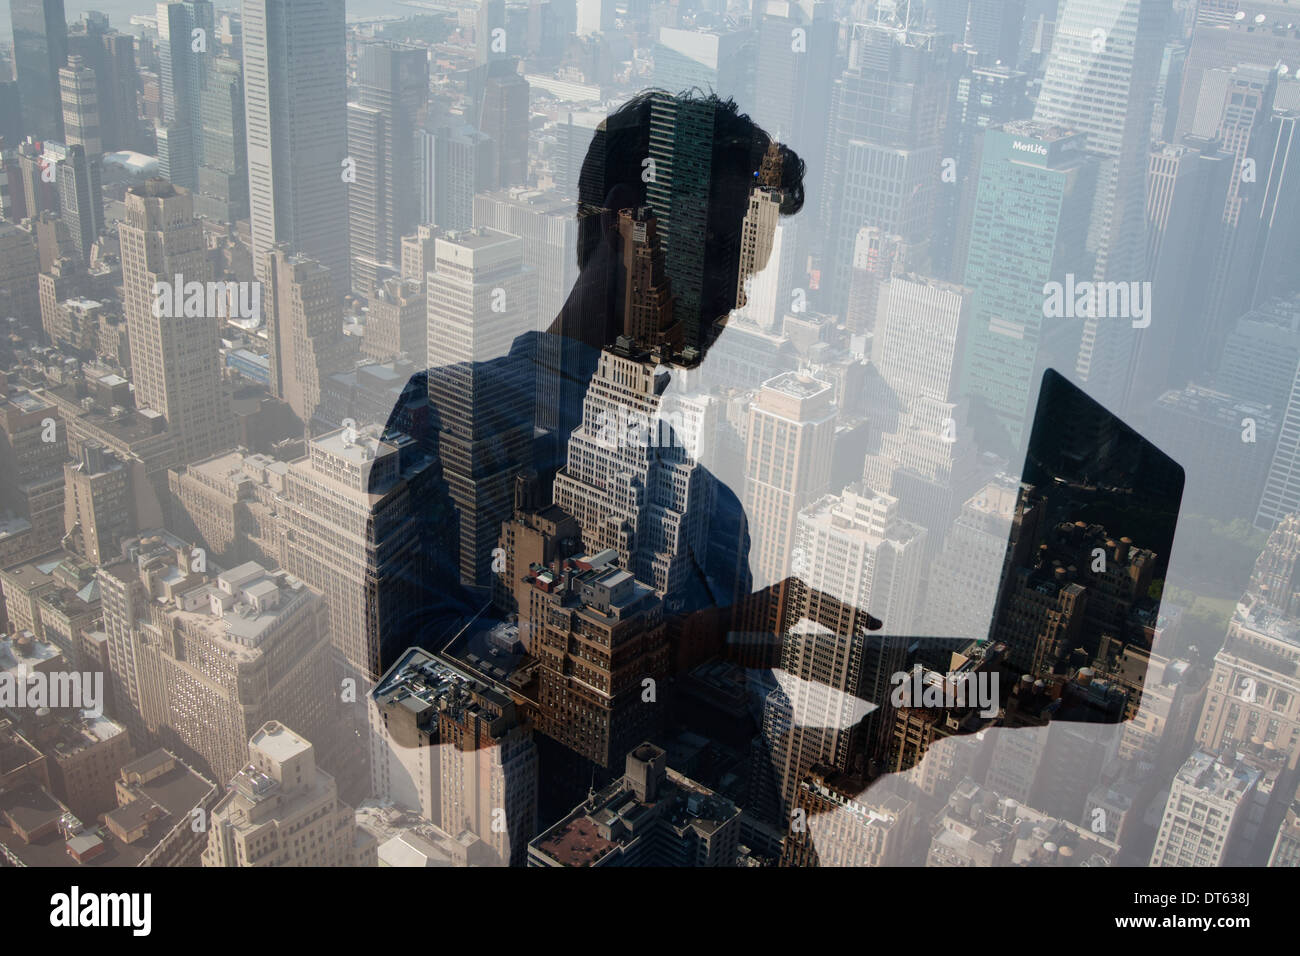 Man using laptop against cityscape, New York, USA - Stock Image